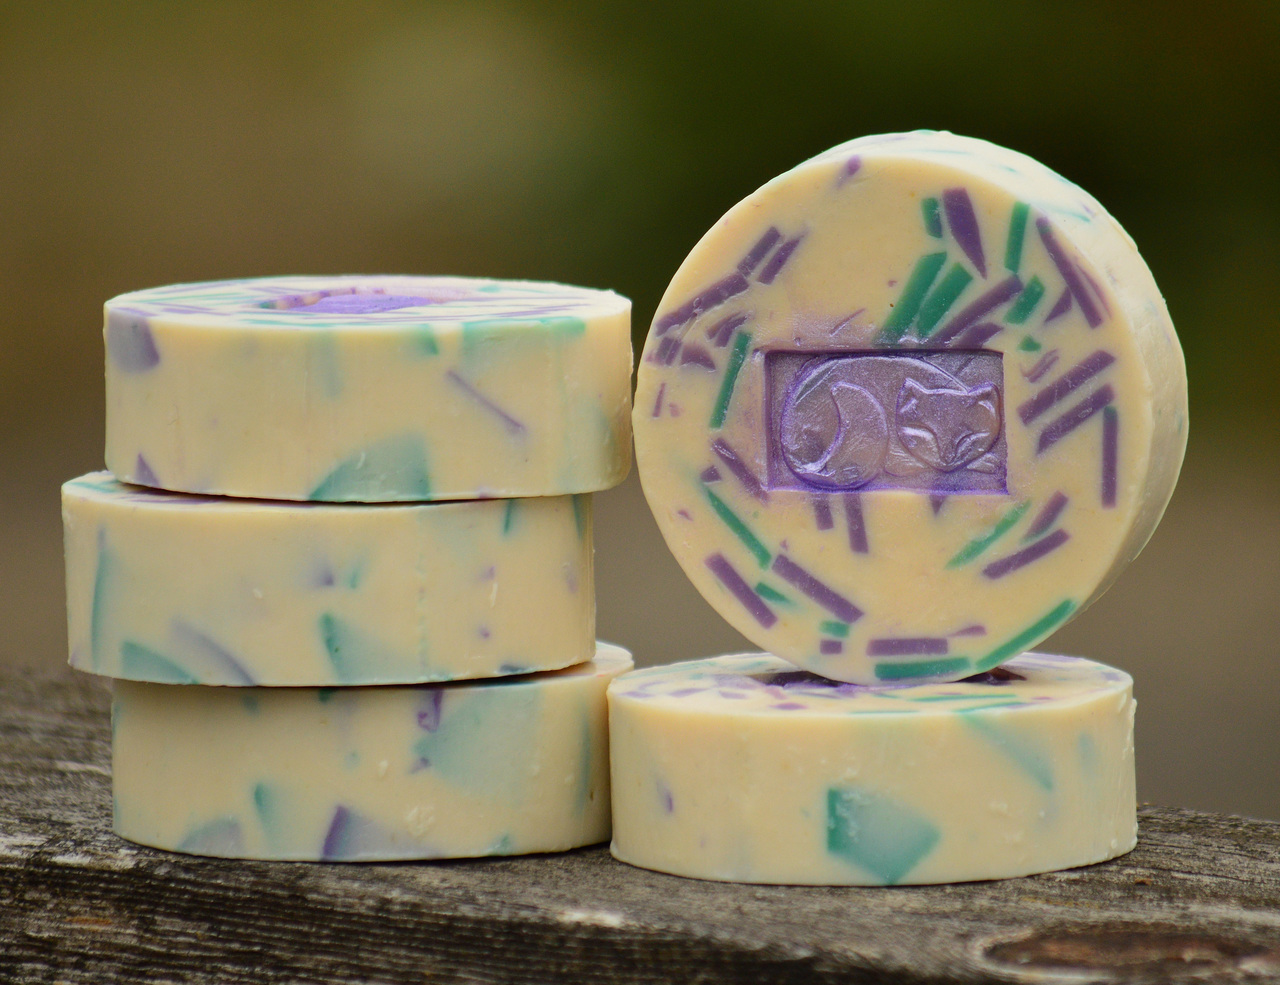 English Lavender & Mint Classic Goat Milk Soap